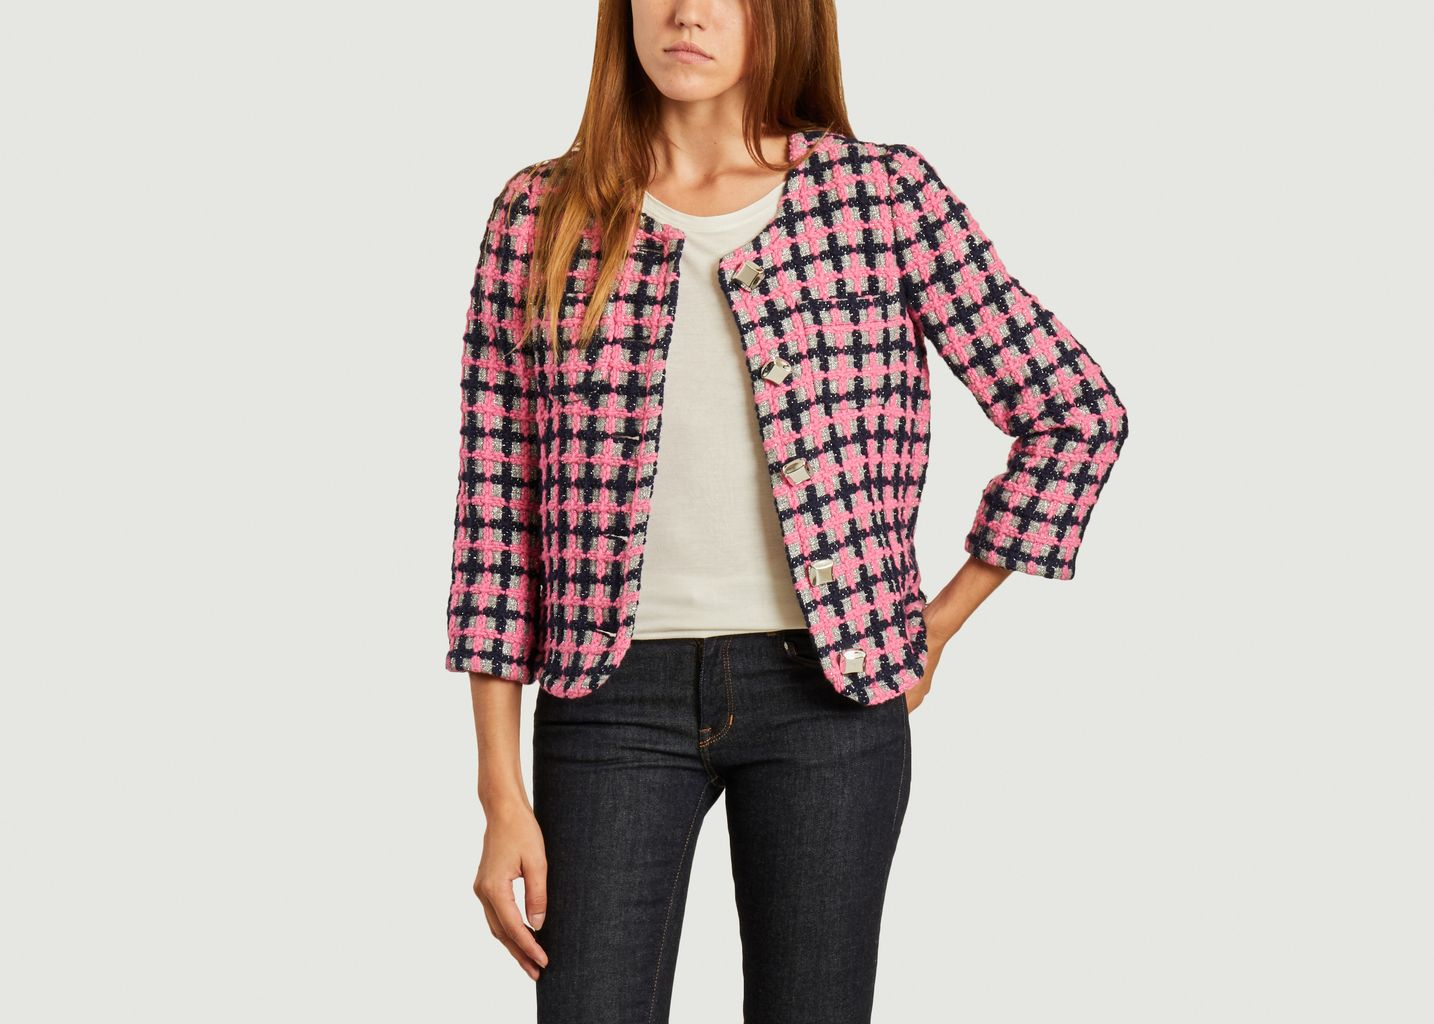 Veste en laine Marc by Marc Jacob - From My Mother